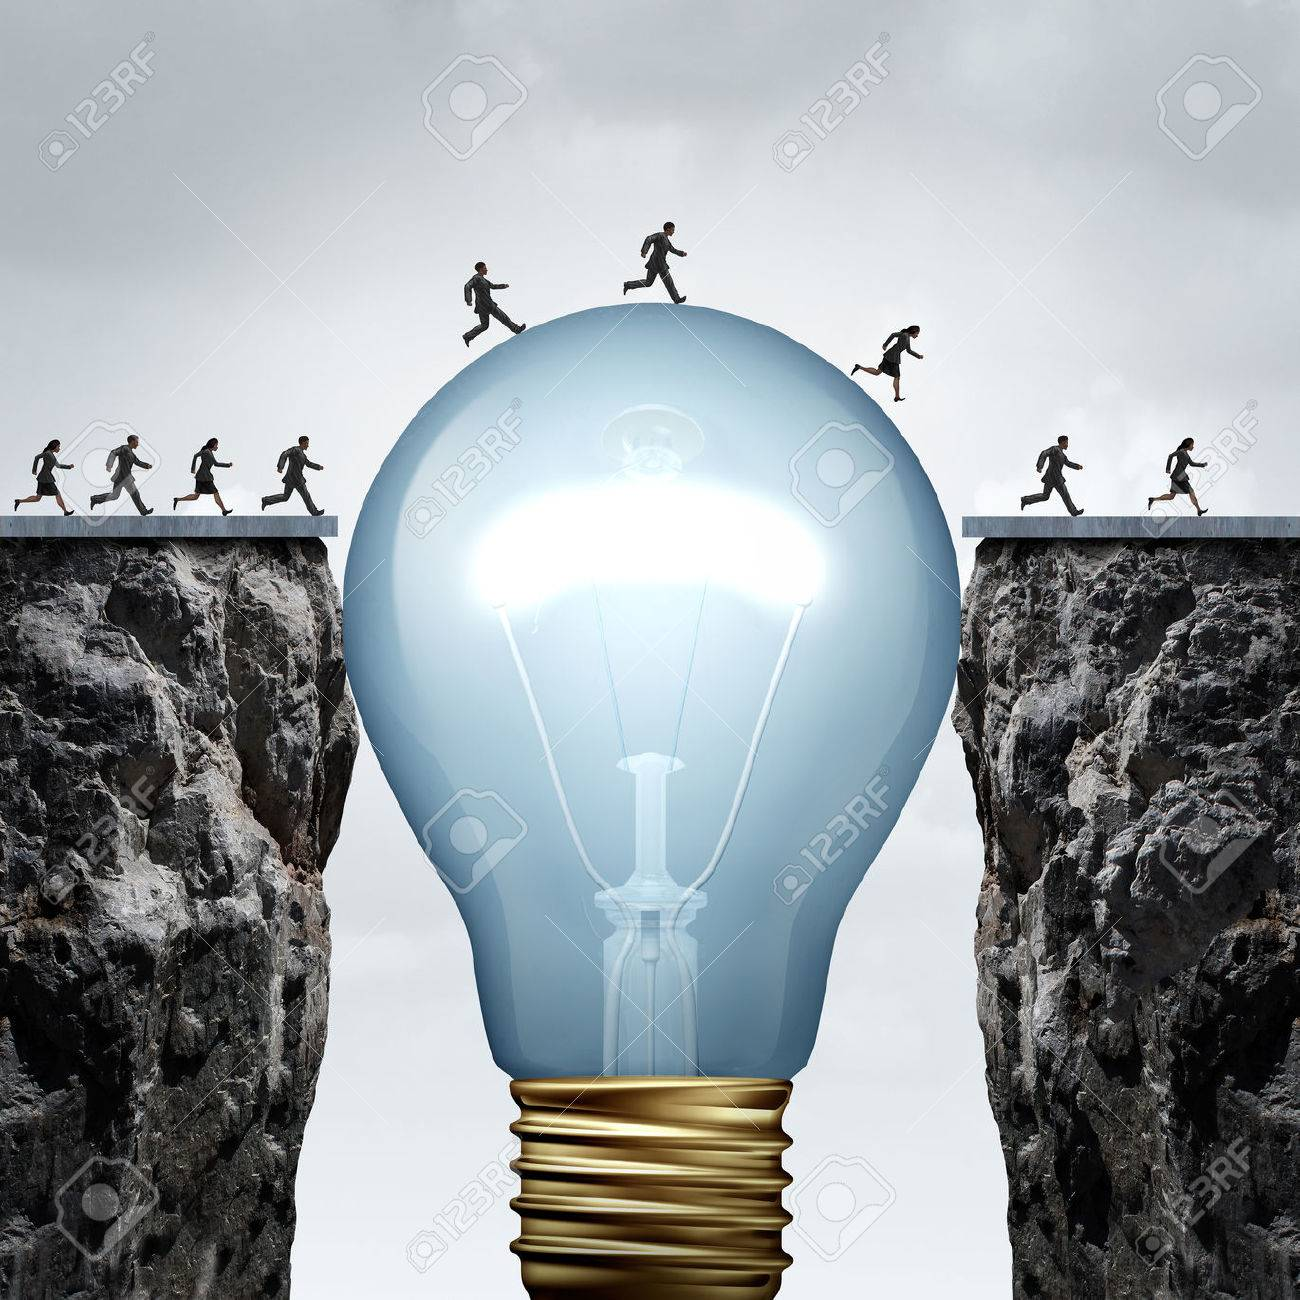 Creativity business idea solution as a group of people on two divided cliffs being connected by a giant light bulb closing the gap and creating a bridge to enable a crossing to success as a cretive thinking metaphor.. - 51757391